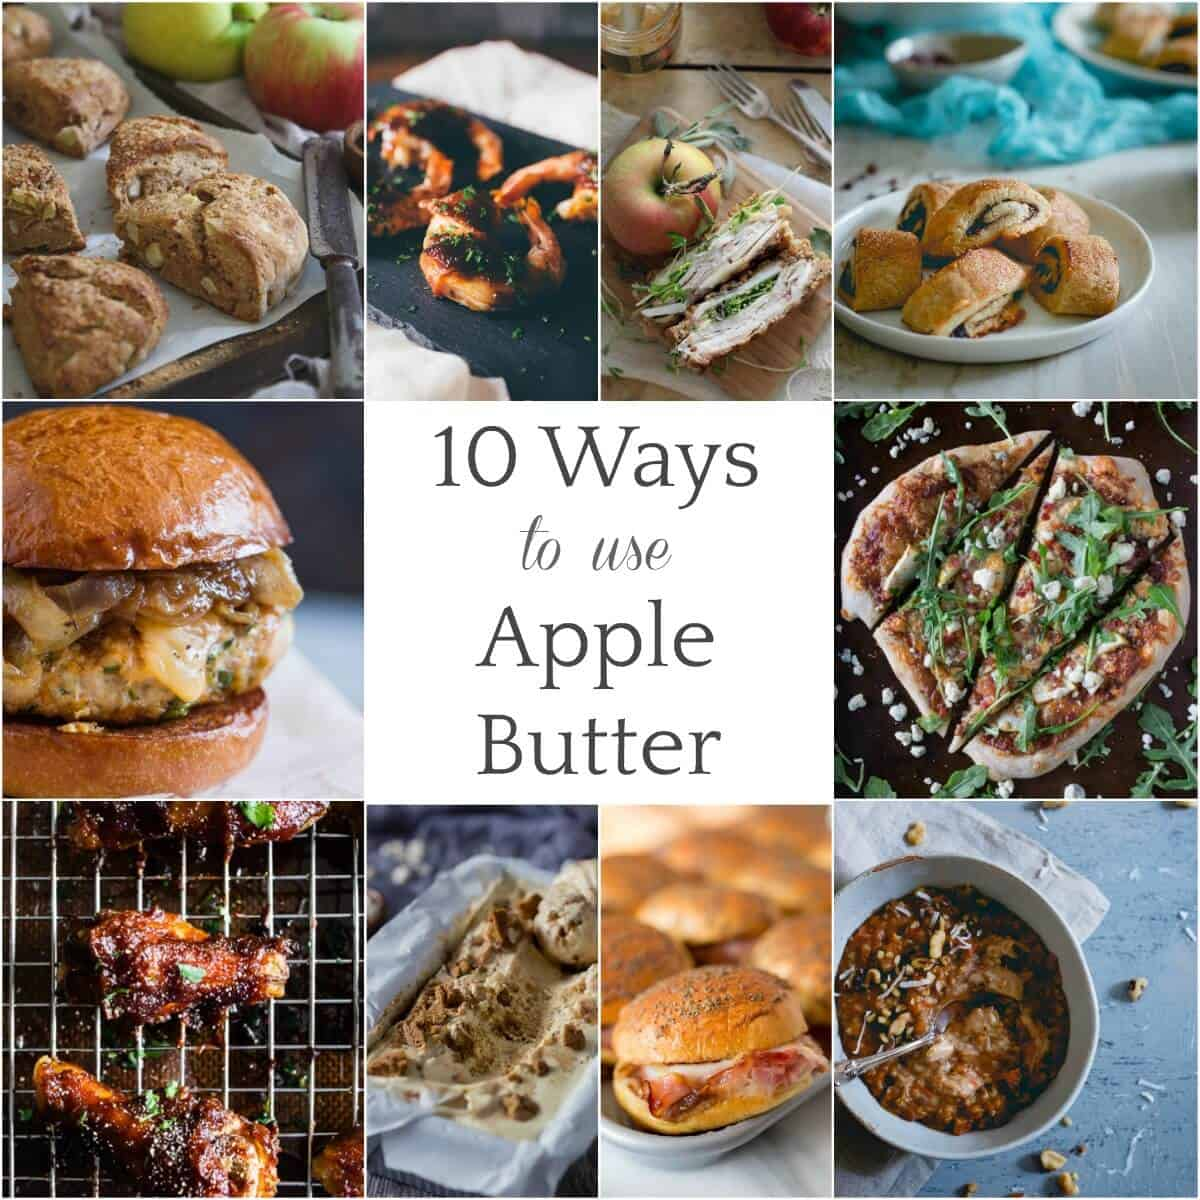 10 Ways To Use Apple Butter - adding apple butter to many sweet and savory recipes is a great way to enjoy this lovely condiment!